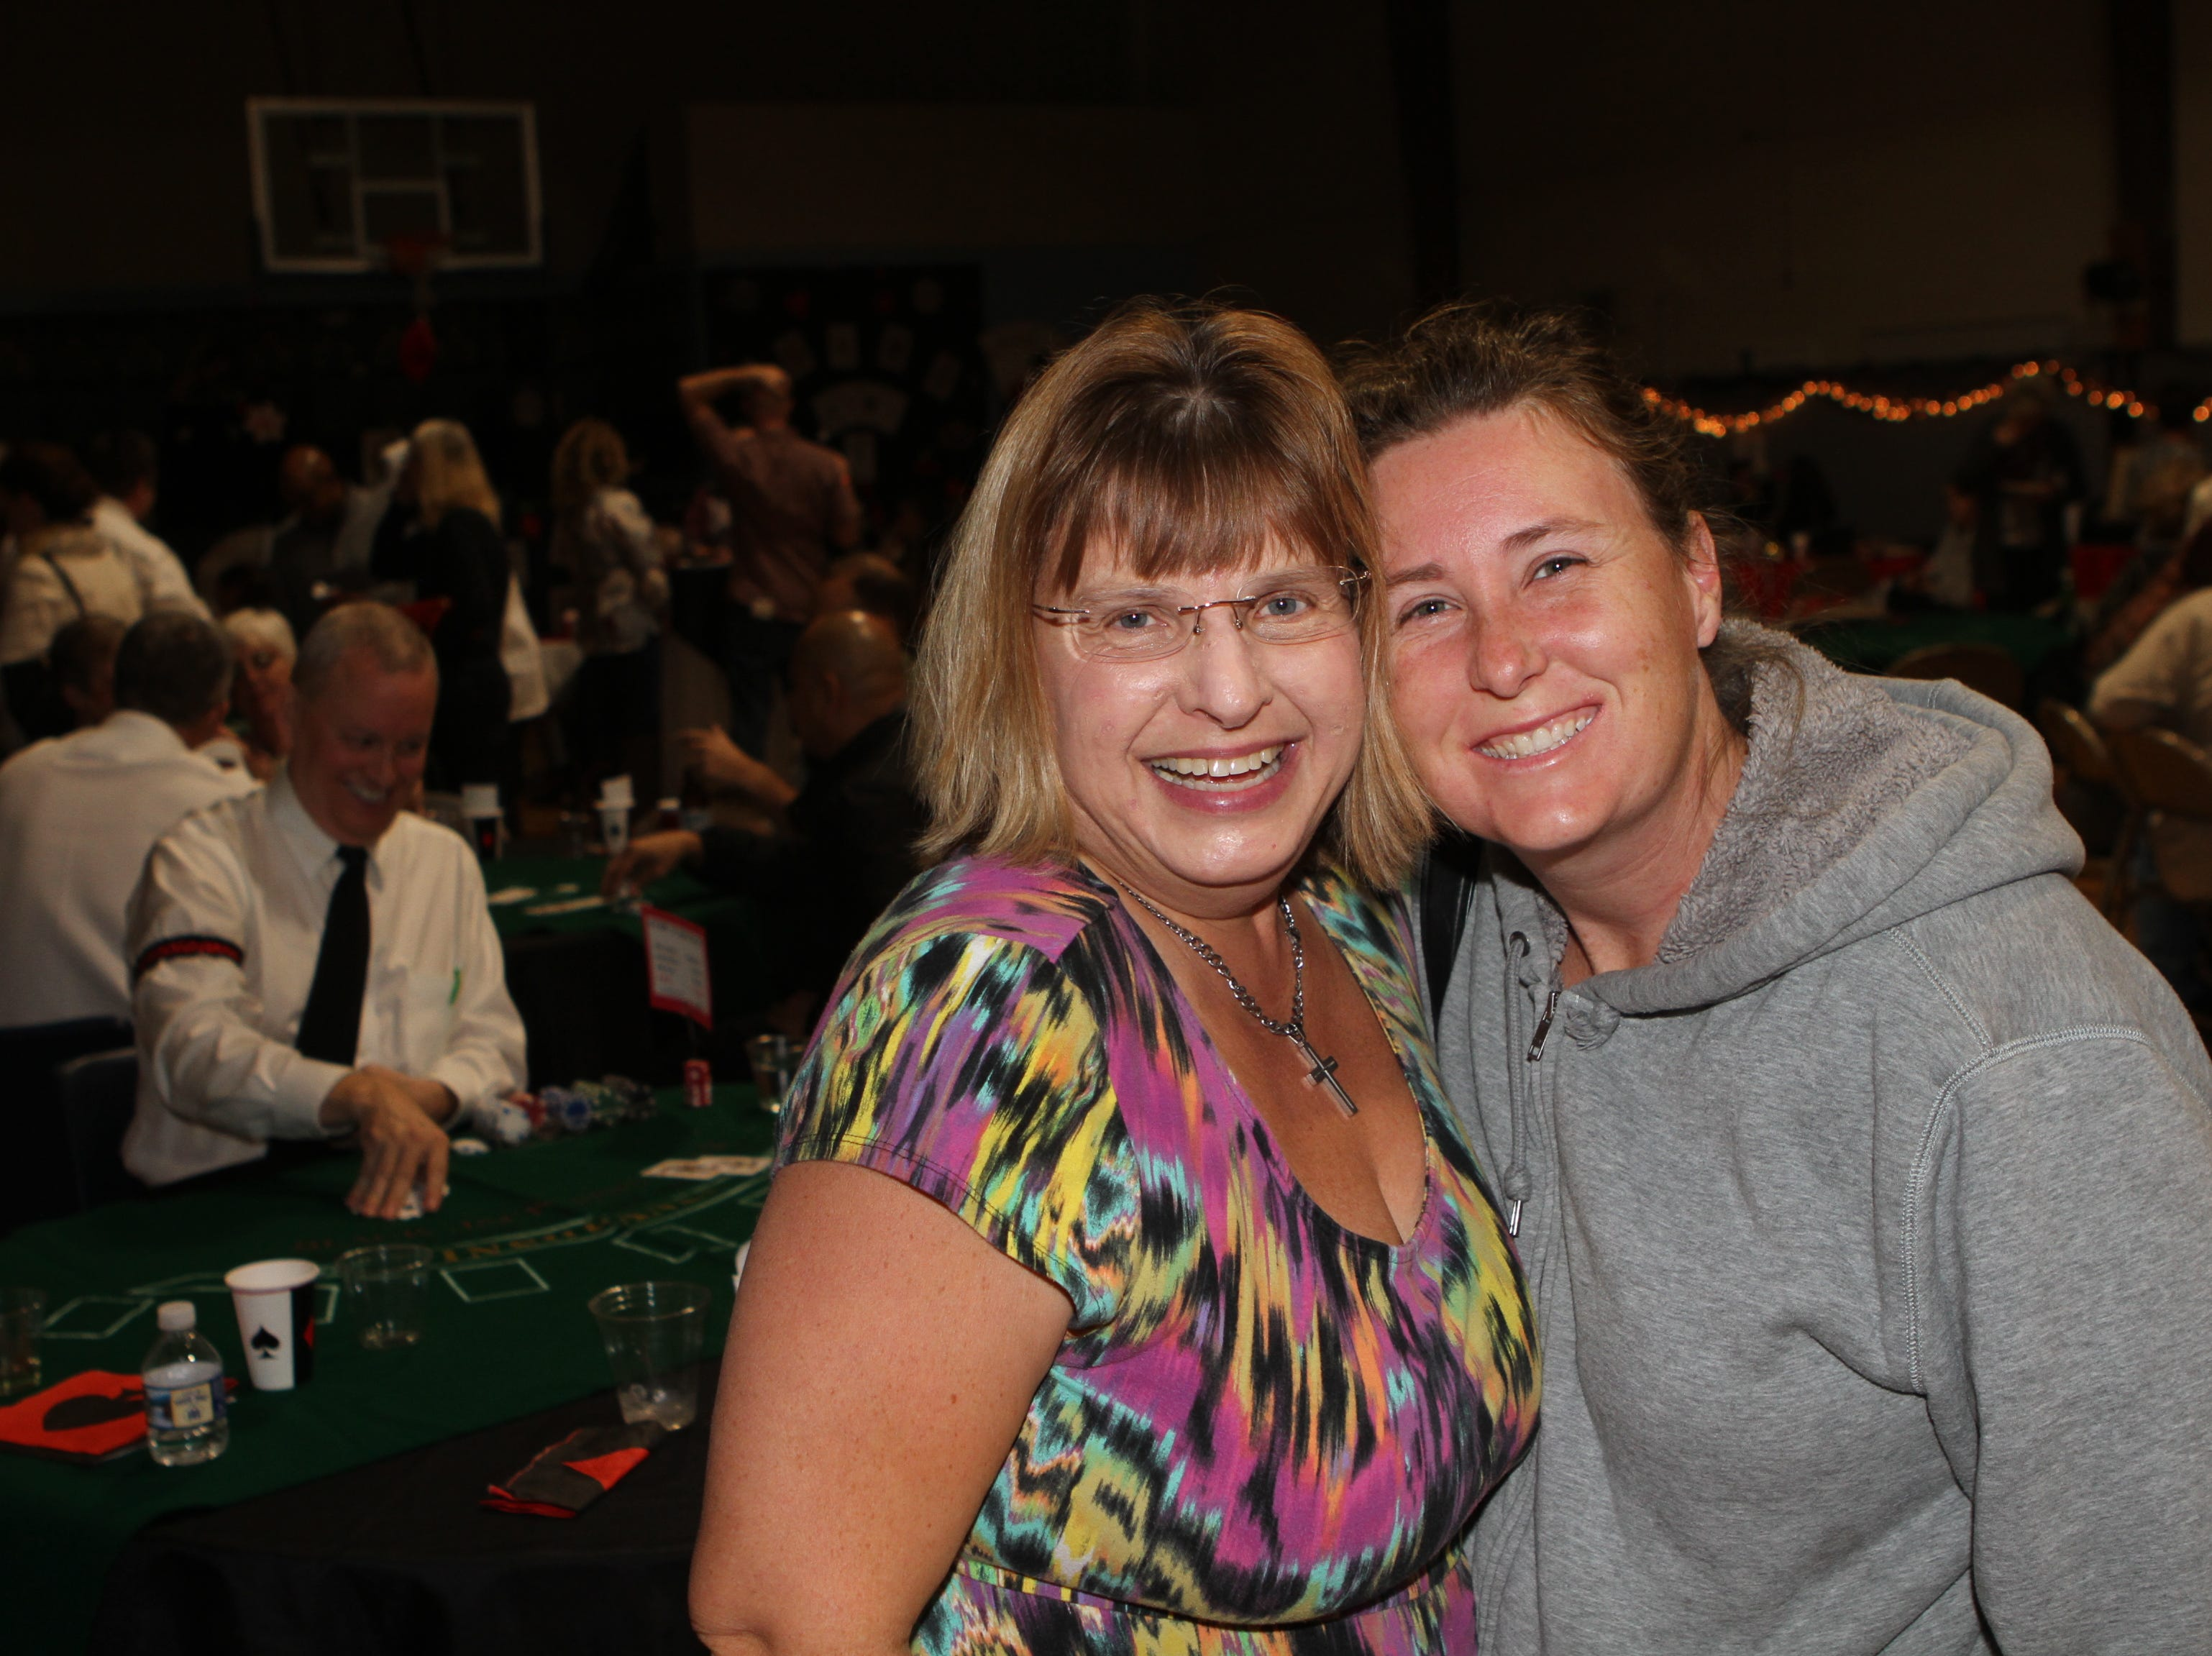 Christa Bunjor and Angela Graben at Casino Night at Immaculate Conception School on Saturday, Nov. 3, 2018.